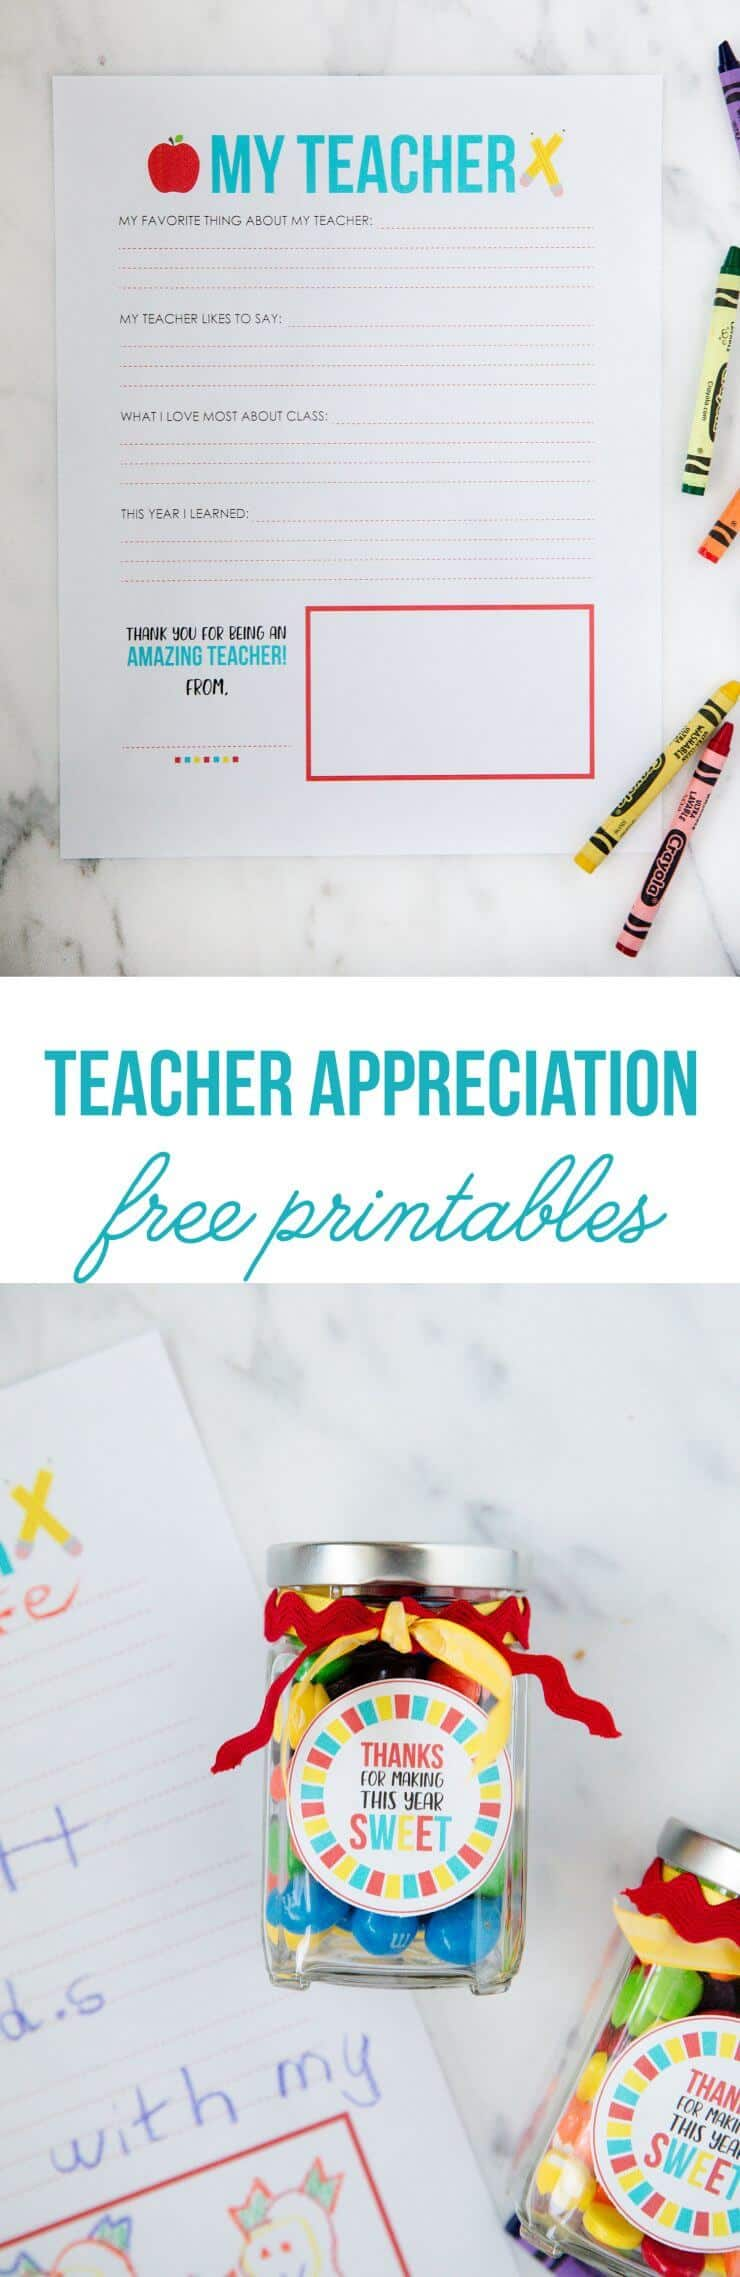 All About My Teacher Printable ...the perfect gift for teacher appreciation!